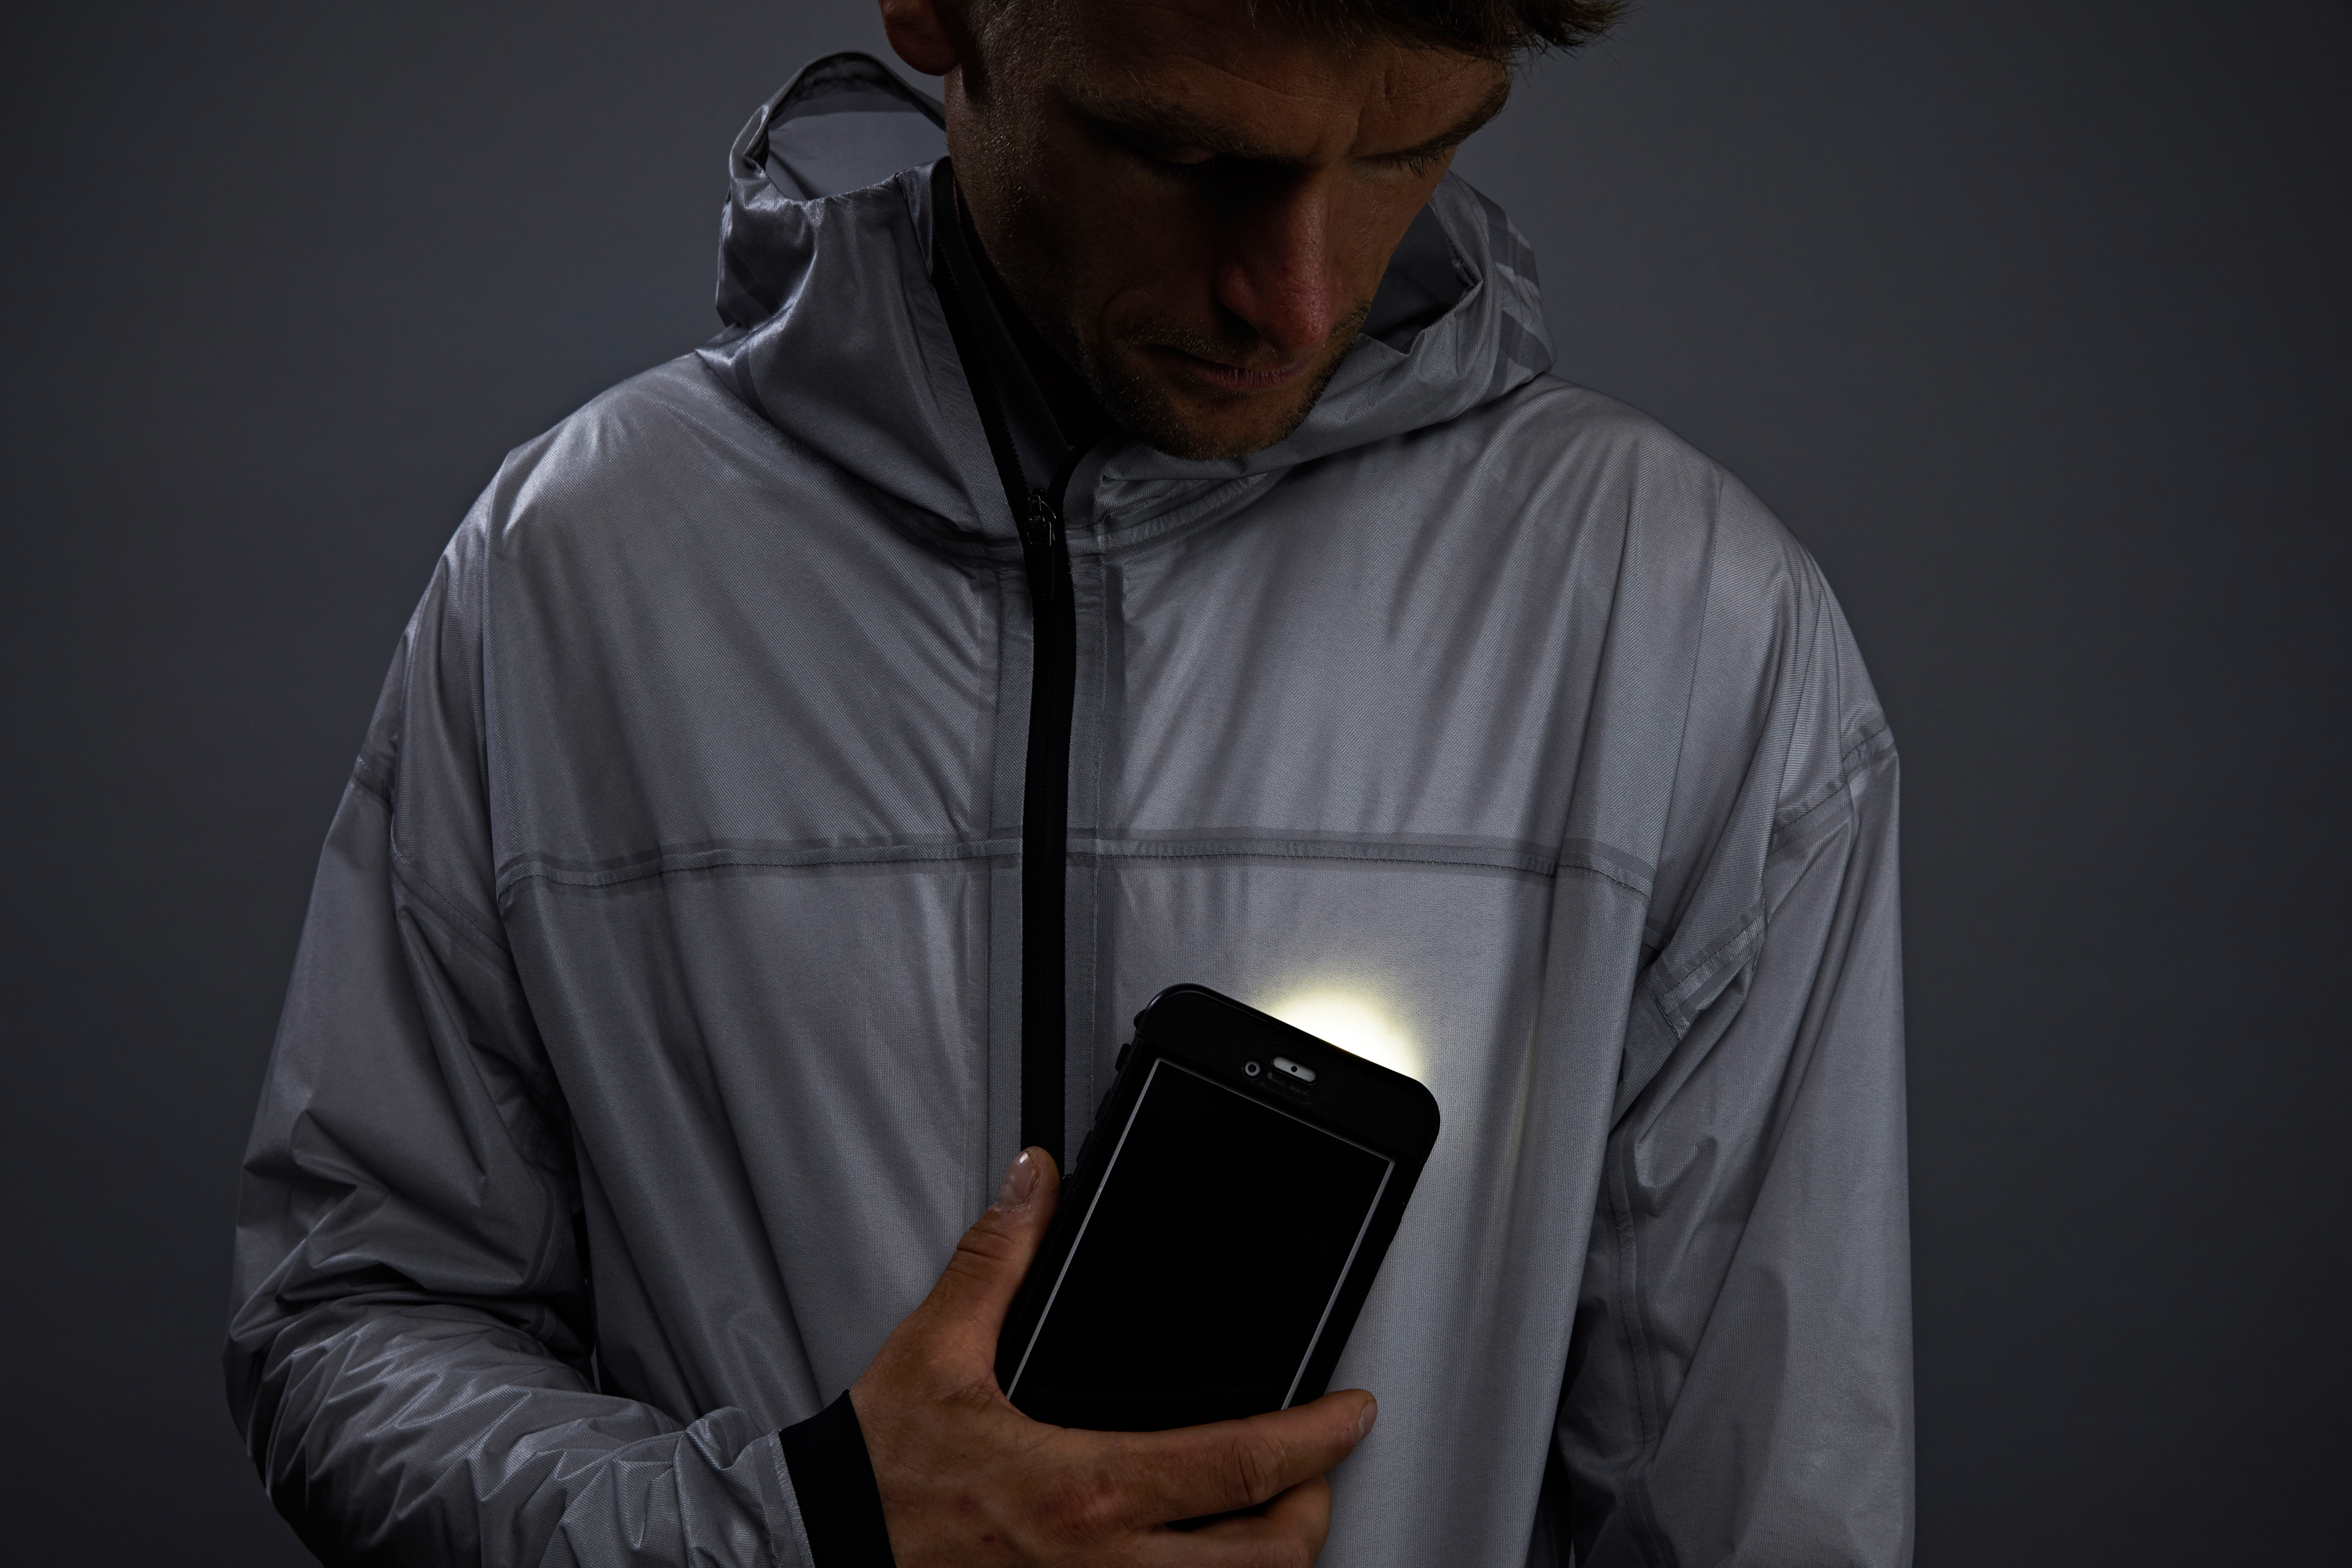 A smartphone is used to power The Solar Charged Jacket from Vollebak (Sun Lee/Vollebak)